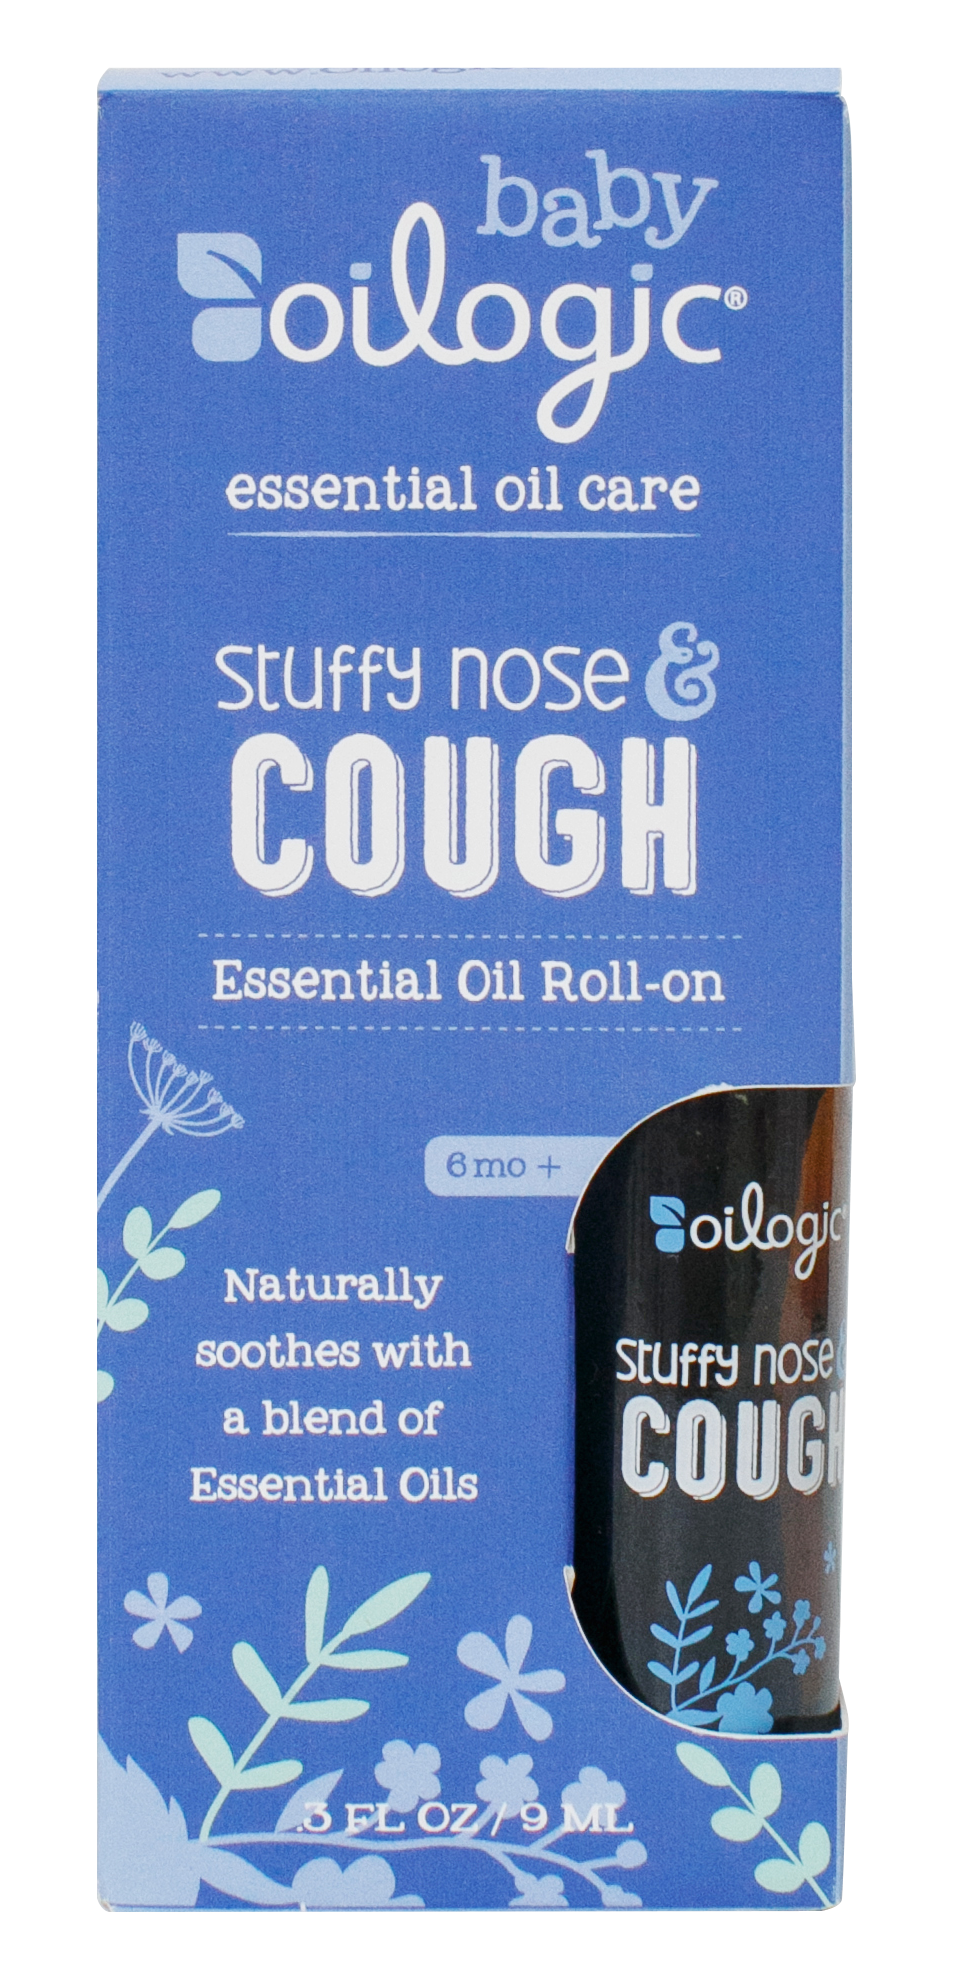 Essential Oils For Cough Roll On For Kids Oilogic Cough Stufy Nose